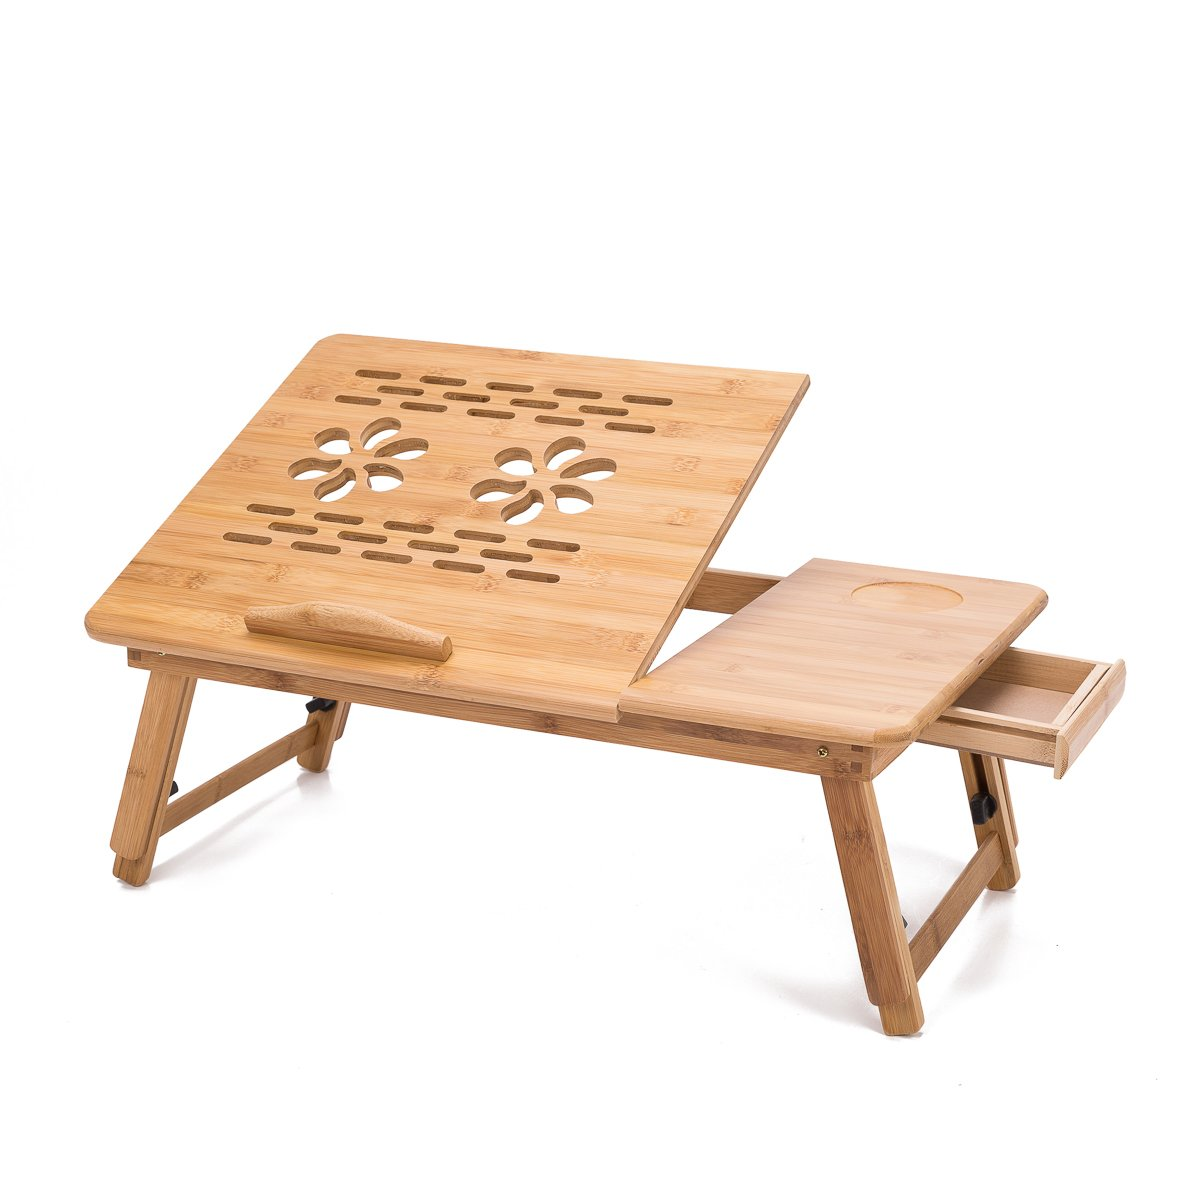 THY COLLECTIBLES Multi Function Bamboo Lapdesk Table Laptop Stand Breakfast Trays Bed Serving Tray with Adjustable Legs 19 3/4'' L x 11 3/4'' W